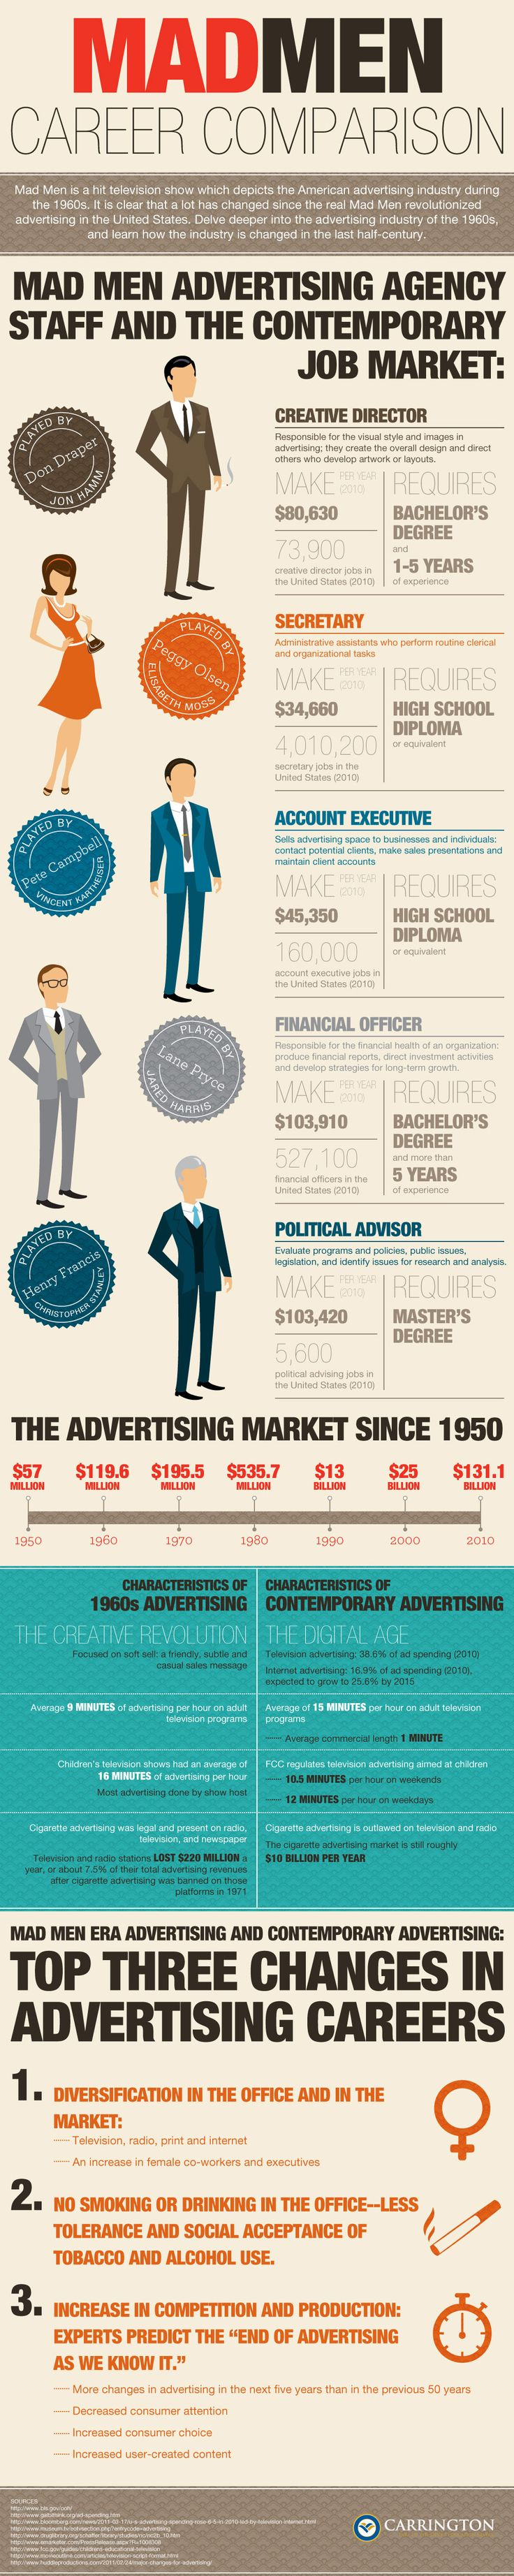 MAD MEN Business InfographicAdvertising Agency, Comparison Infographic, Career Comparison, Infographic Comparison, Don Draper, Madmen Career, Mad Men Infographic, Business Infographic, Men Today